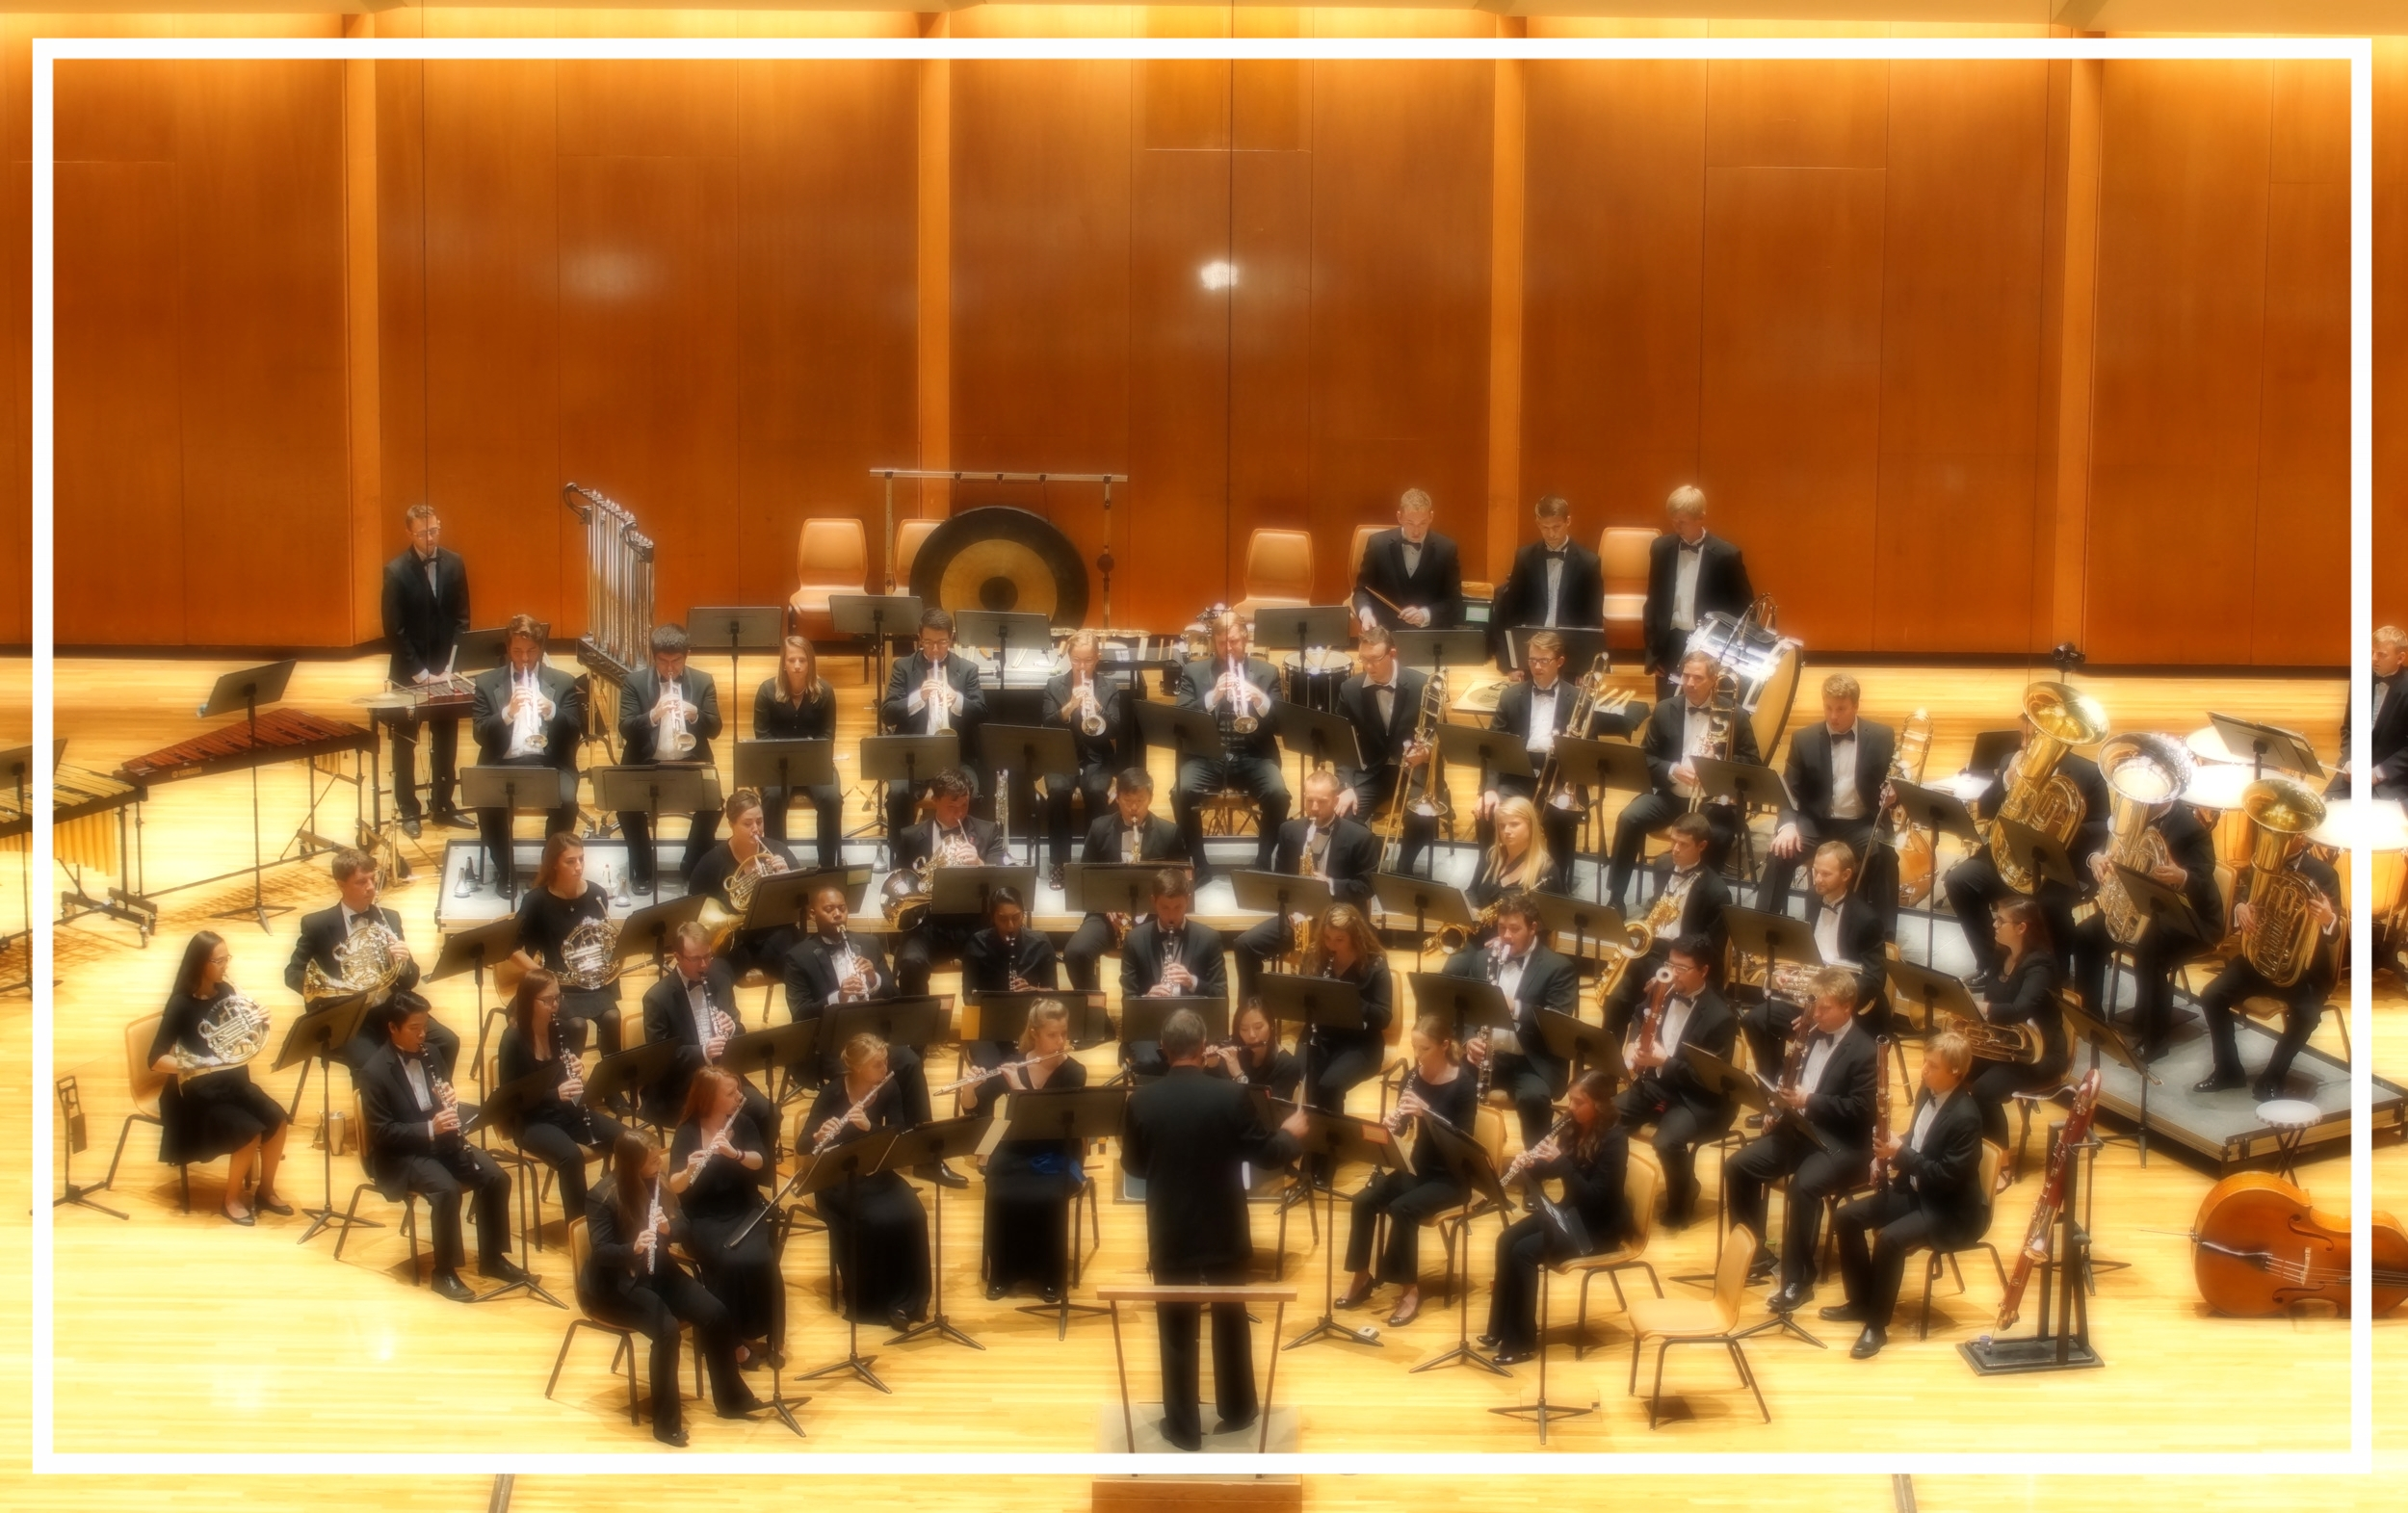 Illinois Bands today - Continued Excellence